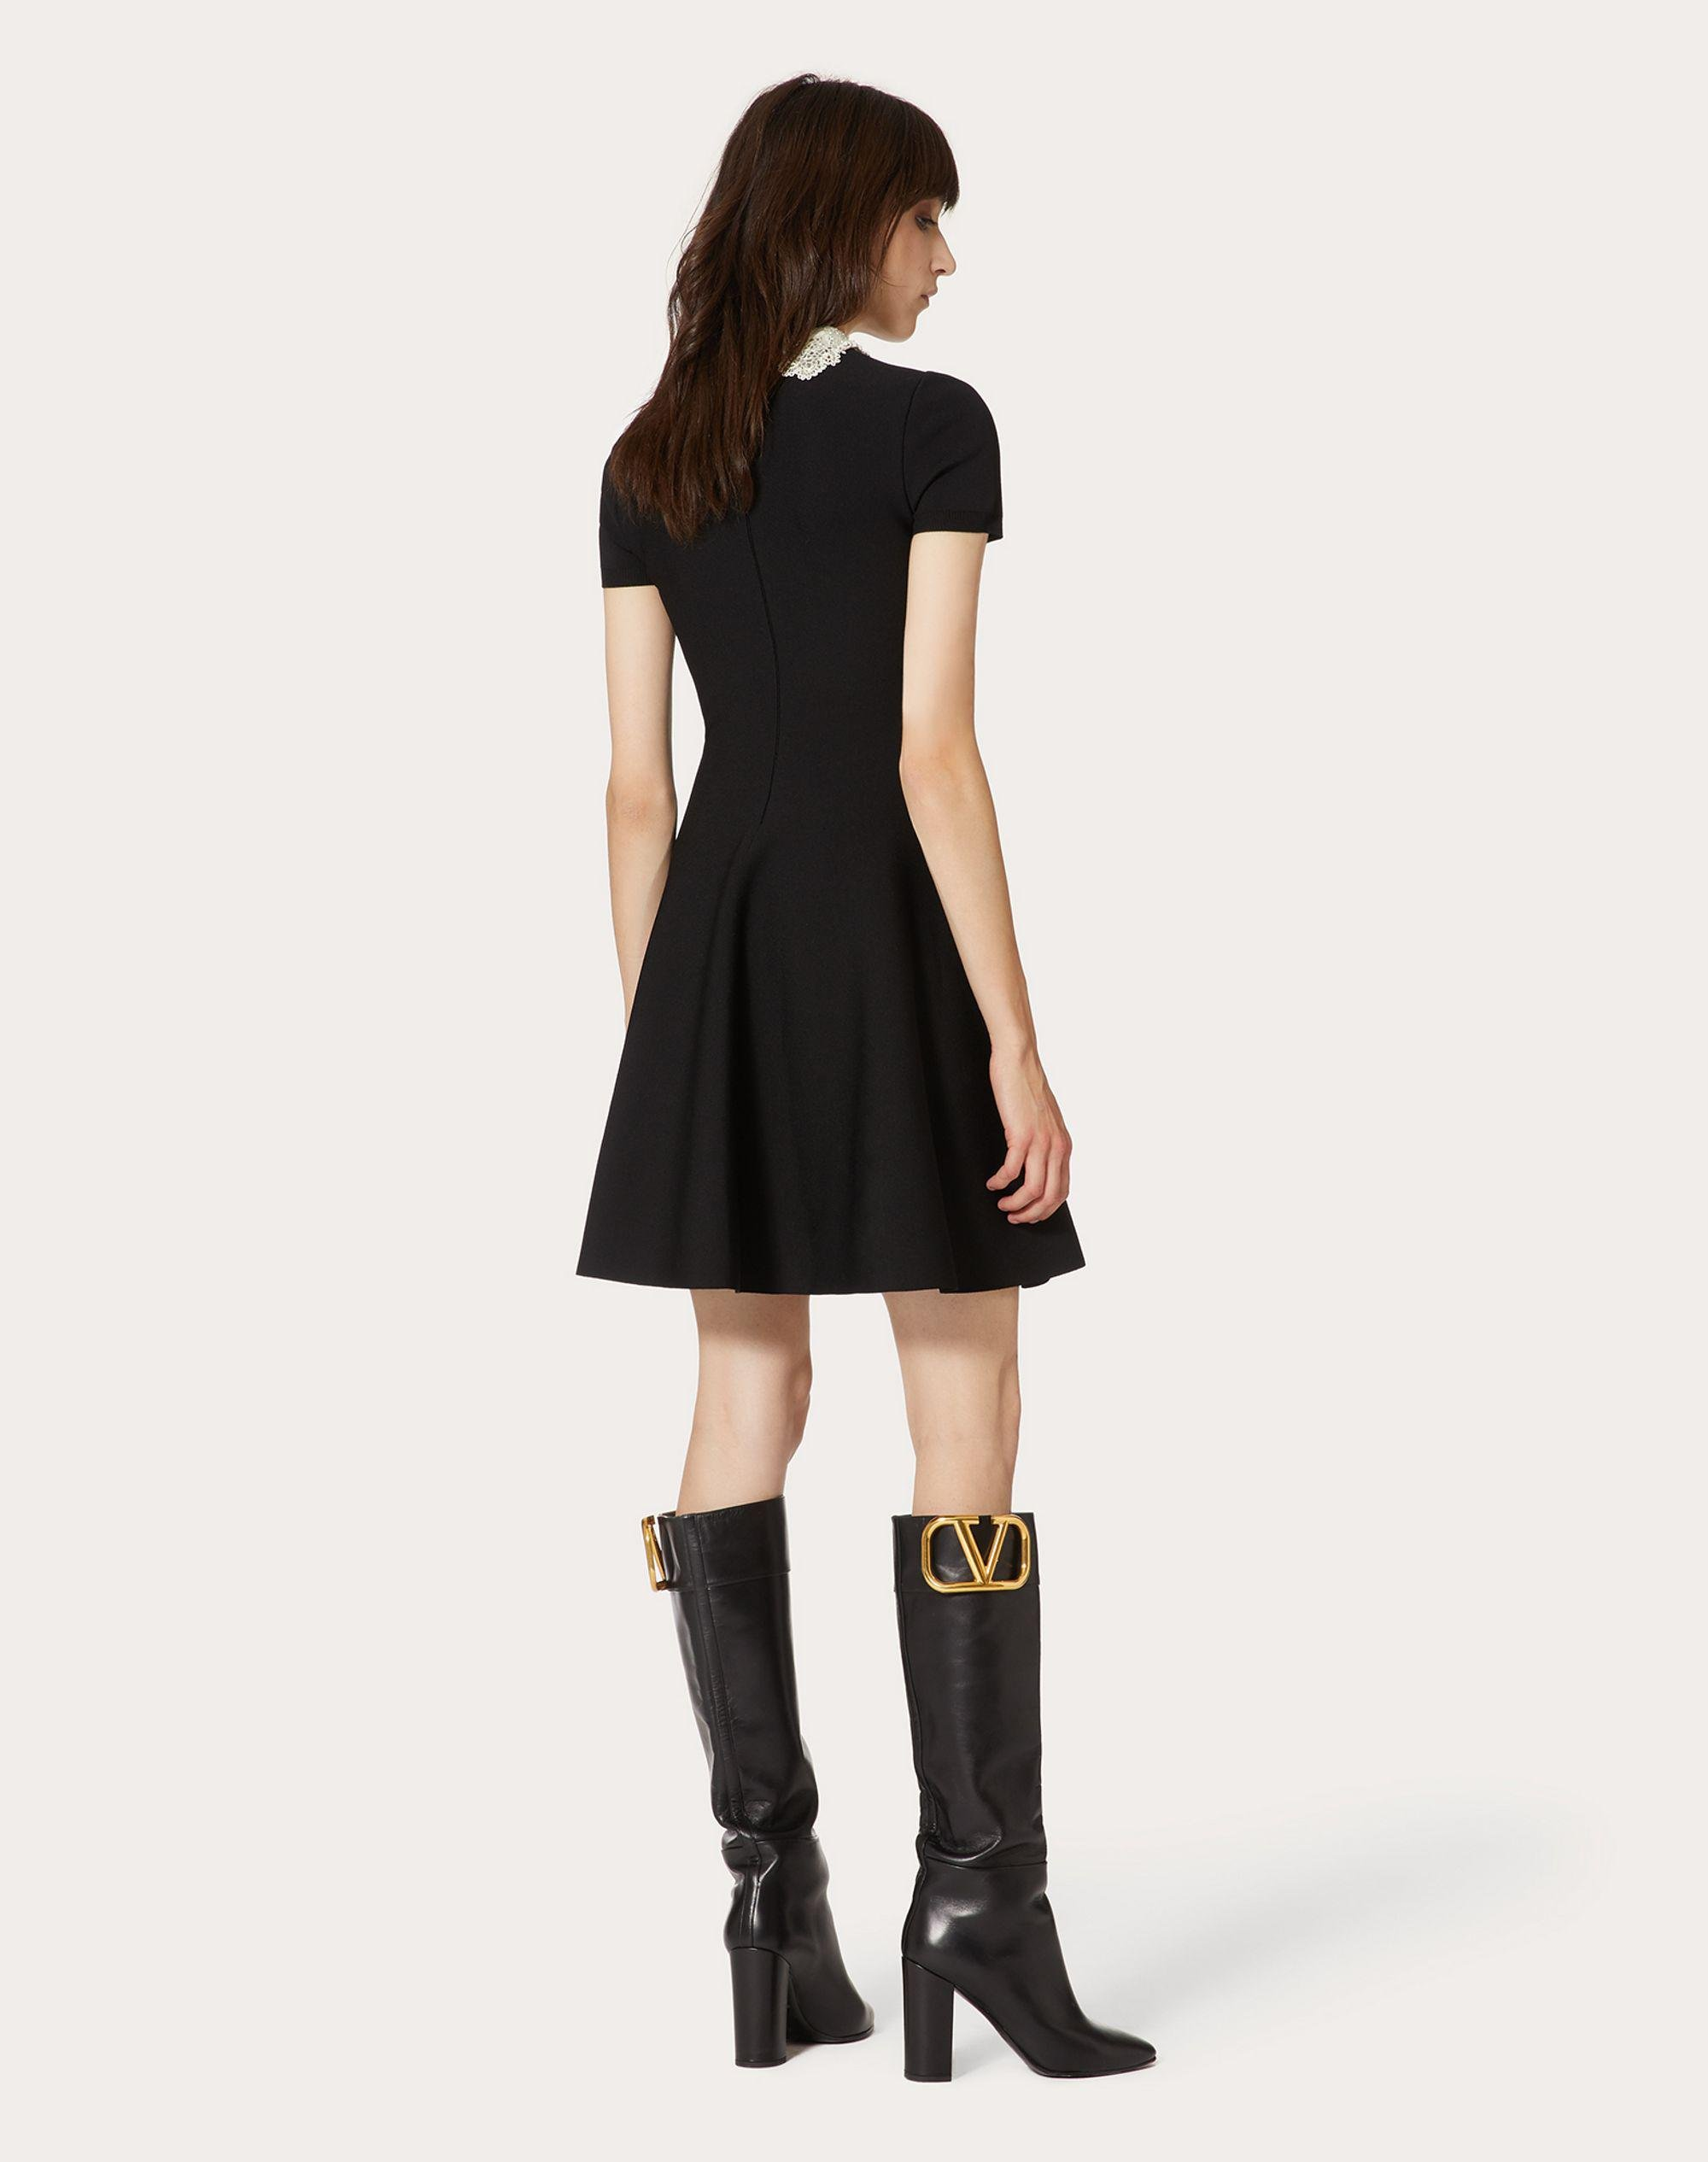 Embroidered Stretch Viscose Knitted Dress 2